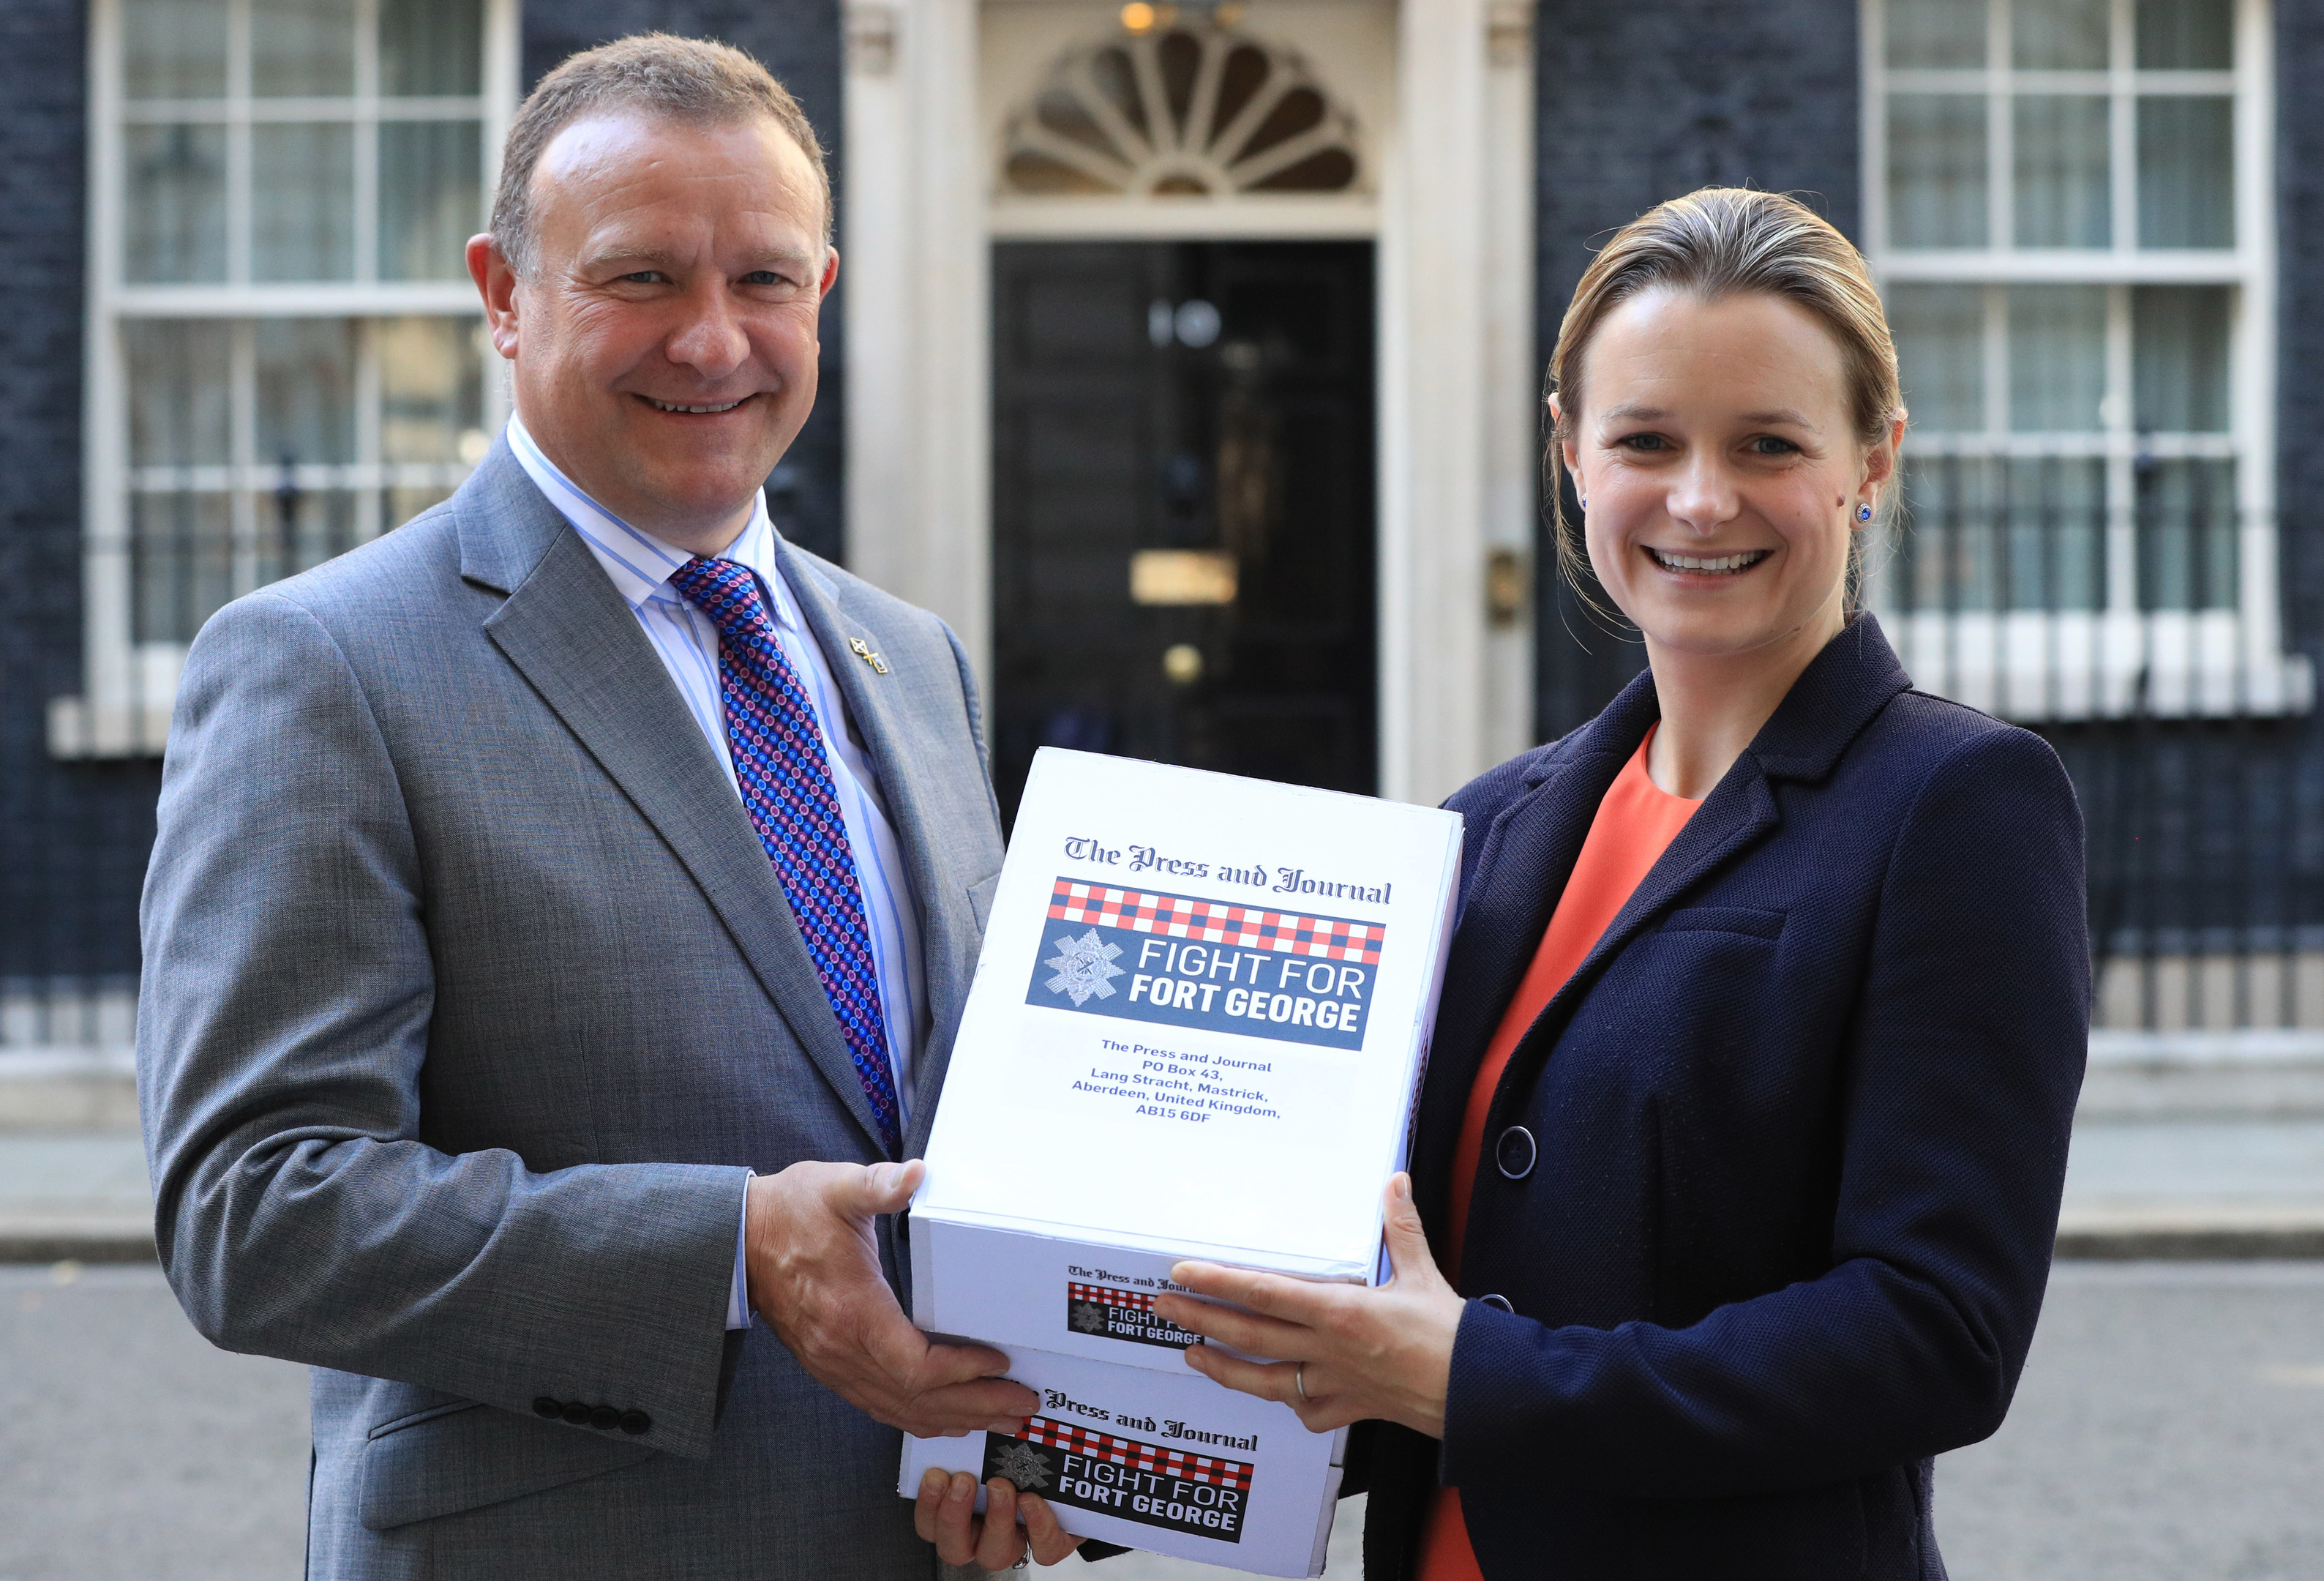 The Press and Journal's petition is handed into Downing Street